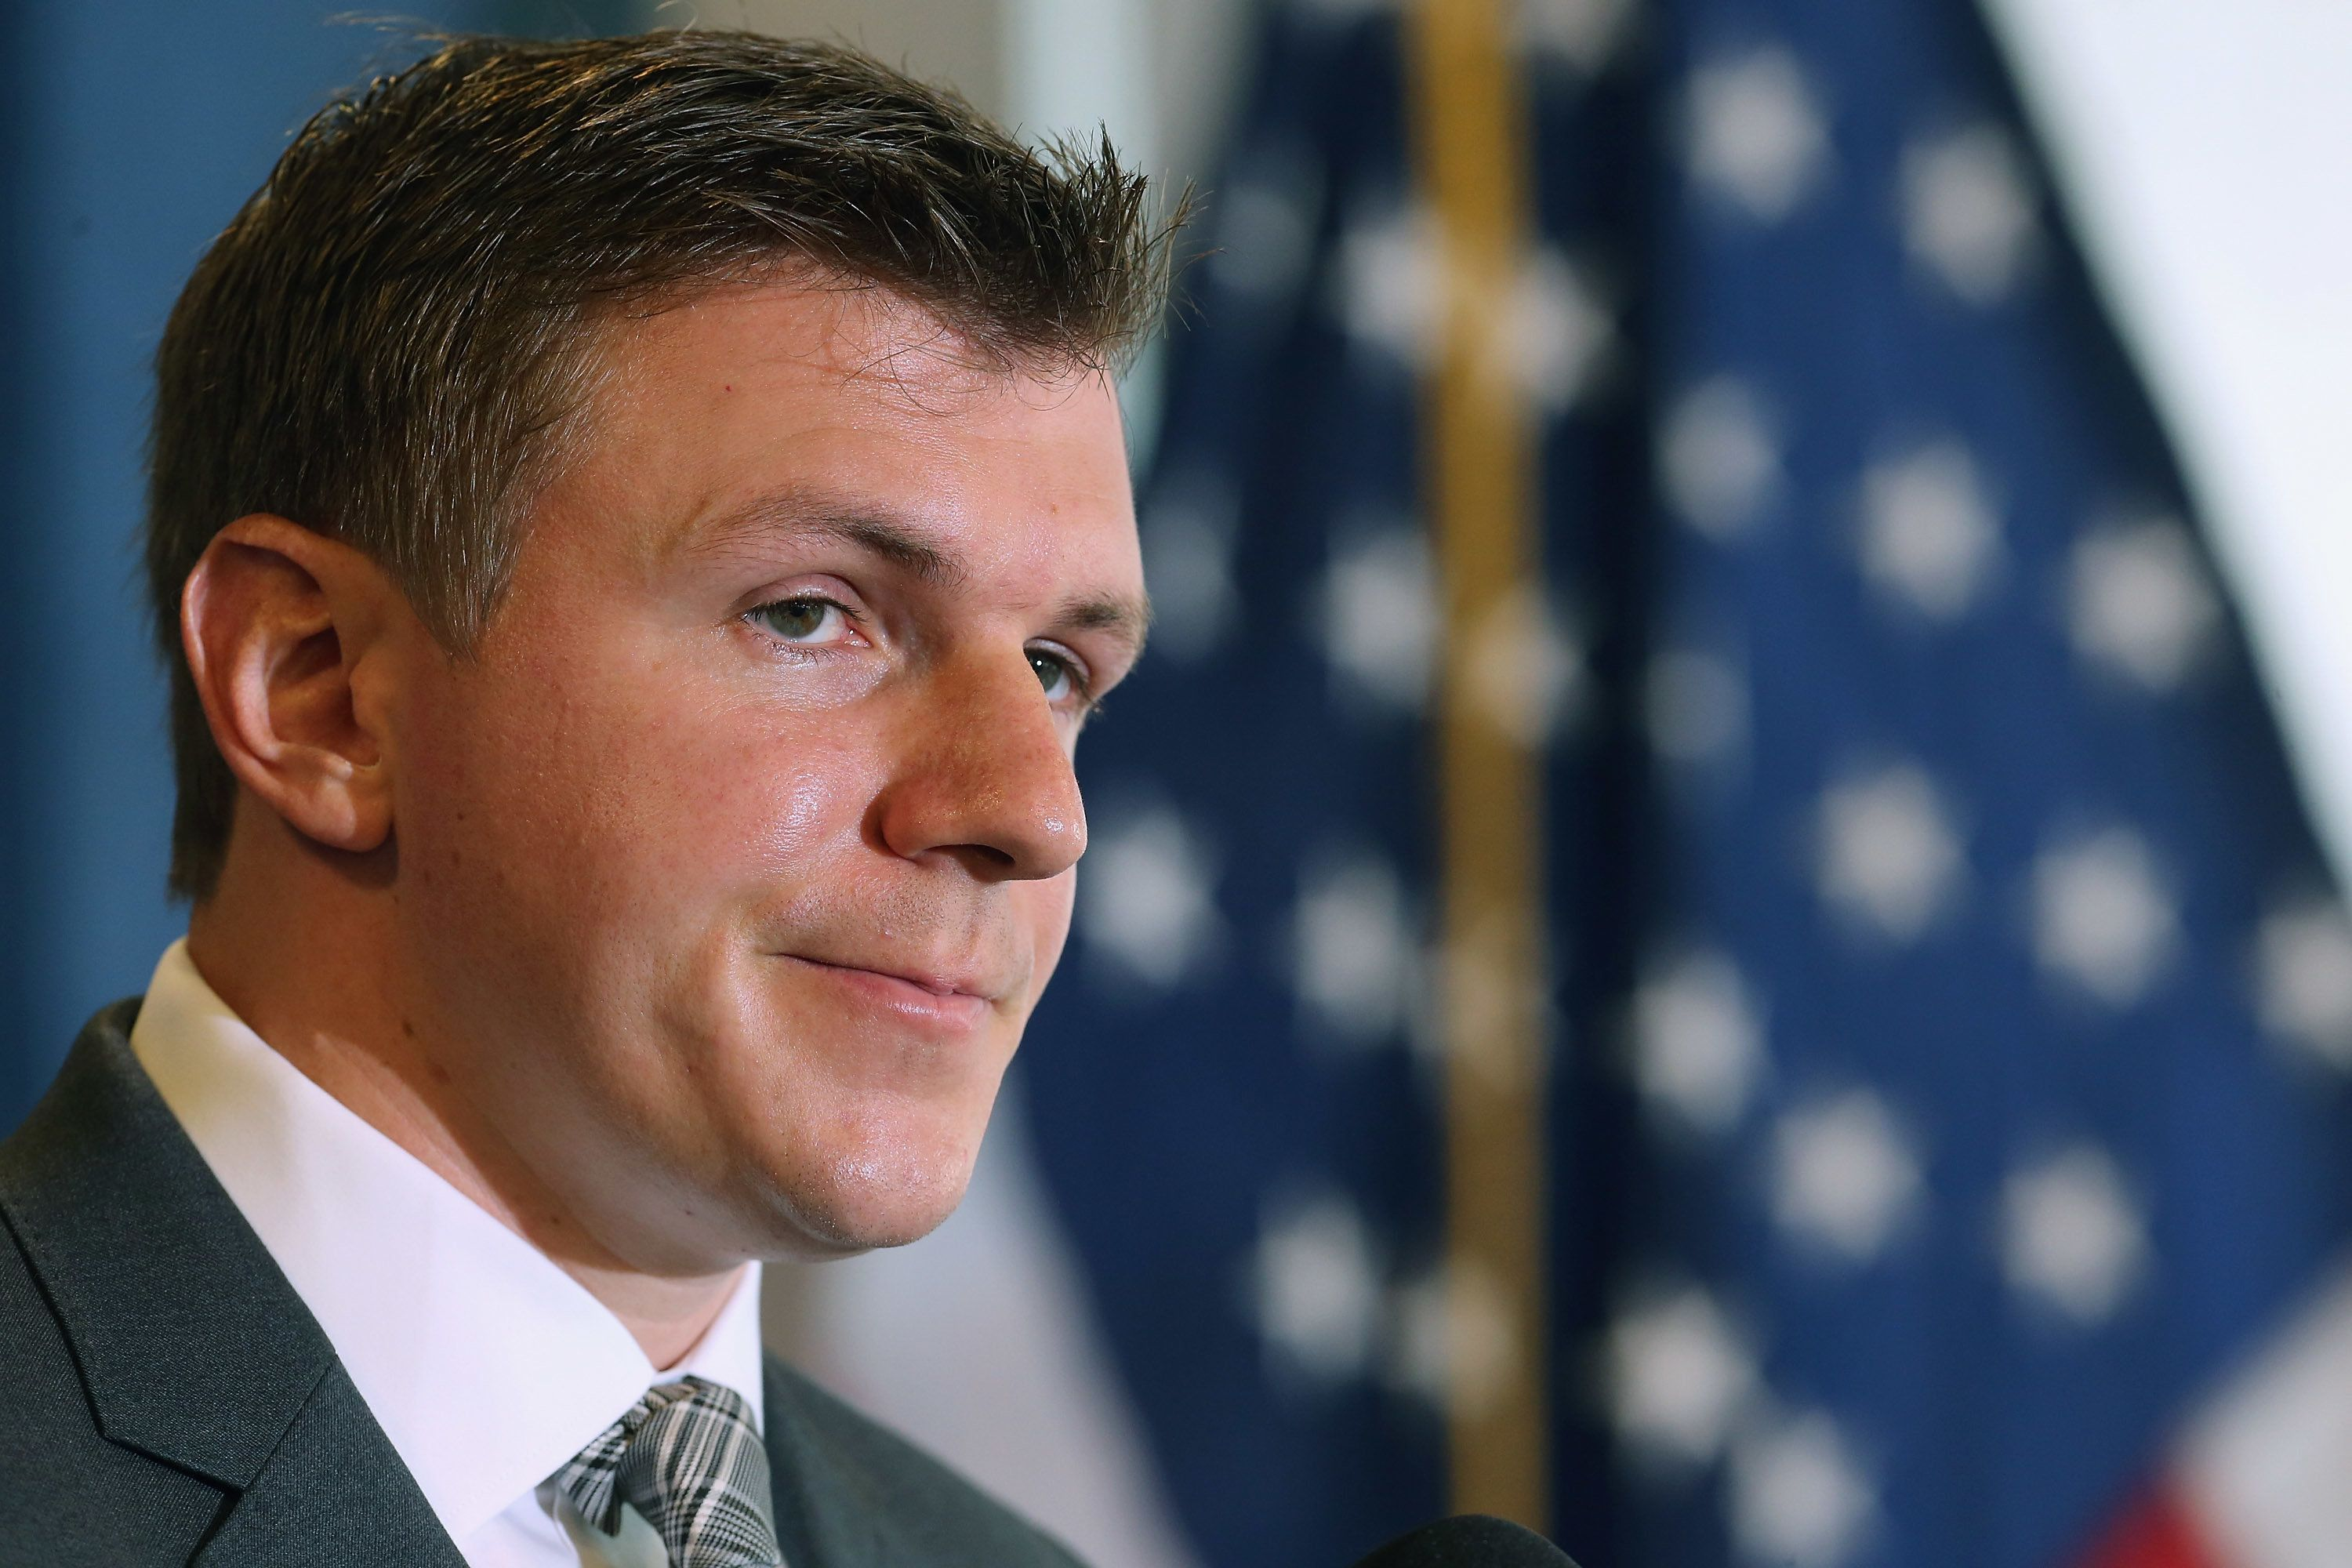 Conservative undercover journalist James O'Keefe's organization produced a video of a protest planning meeting that was shown